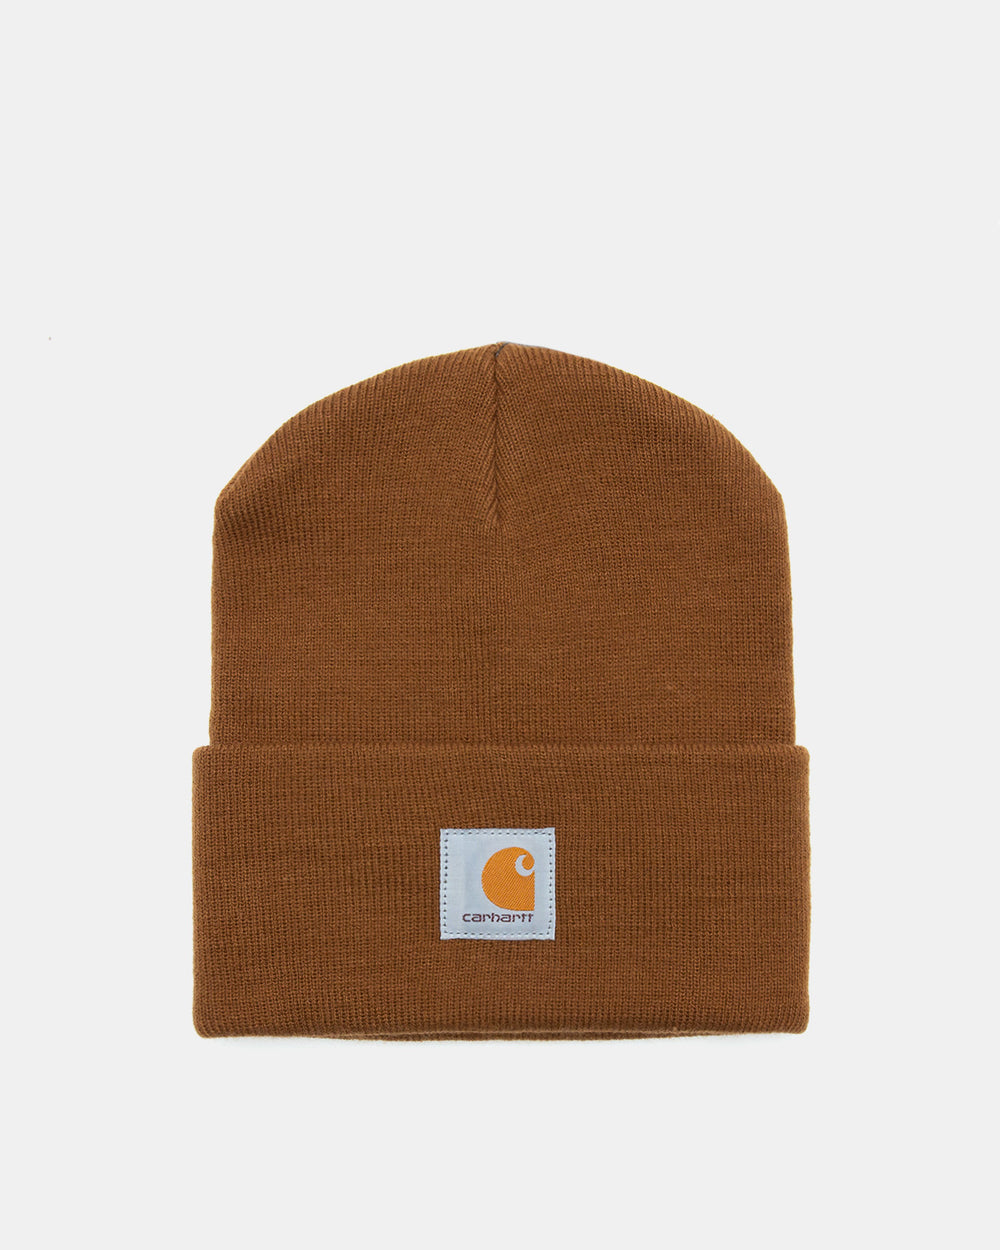 '47 Brand - '47 Brand x Carhartt Washington Redskins Cuff Knit Beanie (Duck Brown)